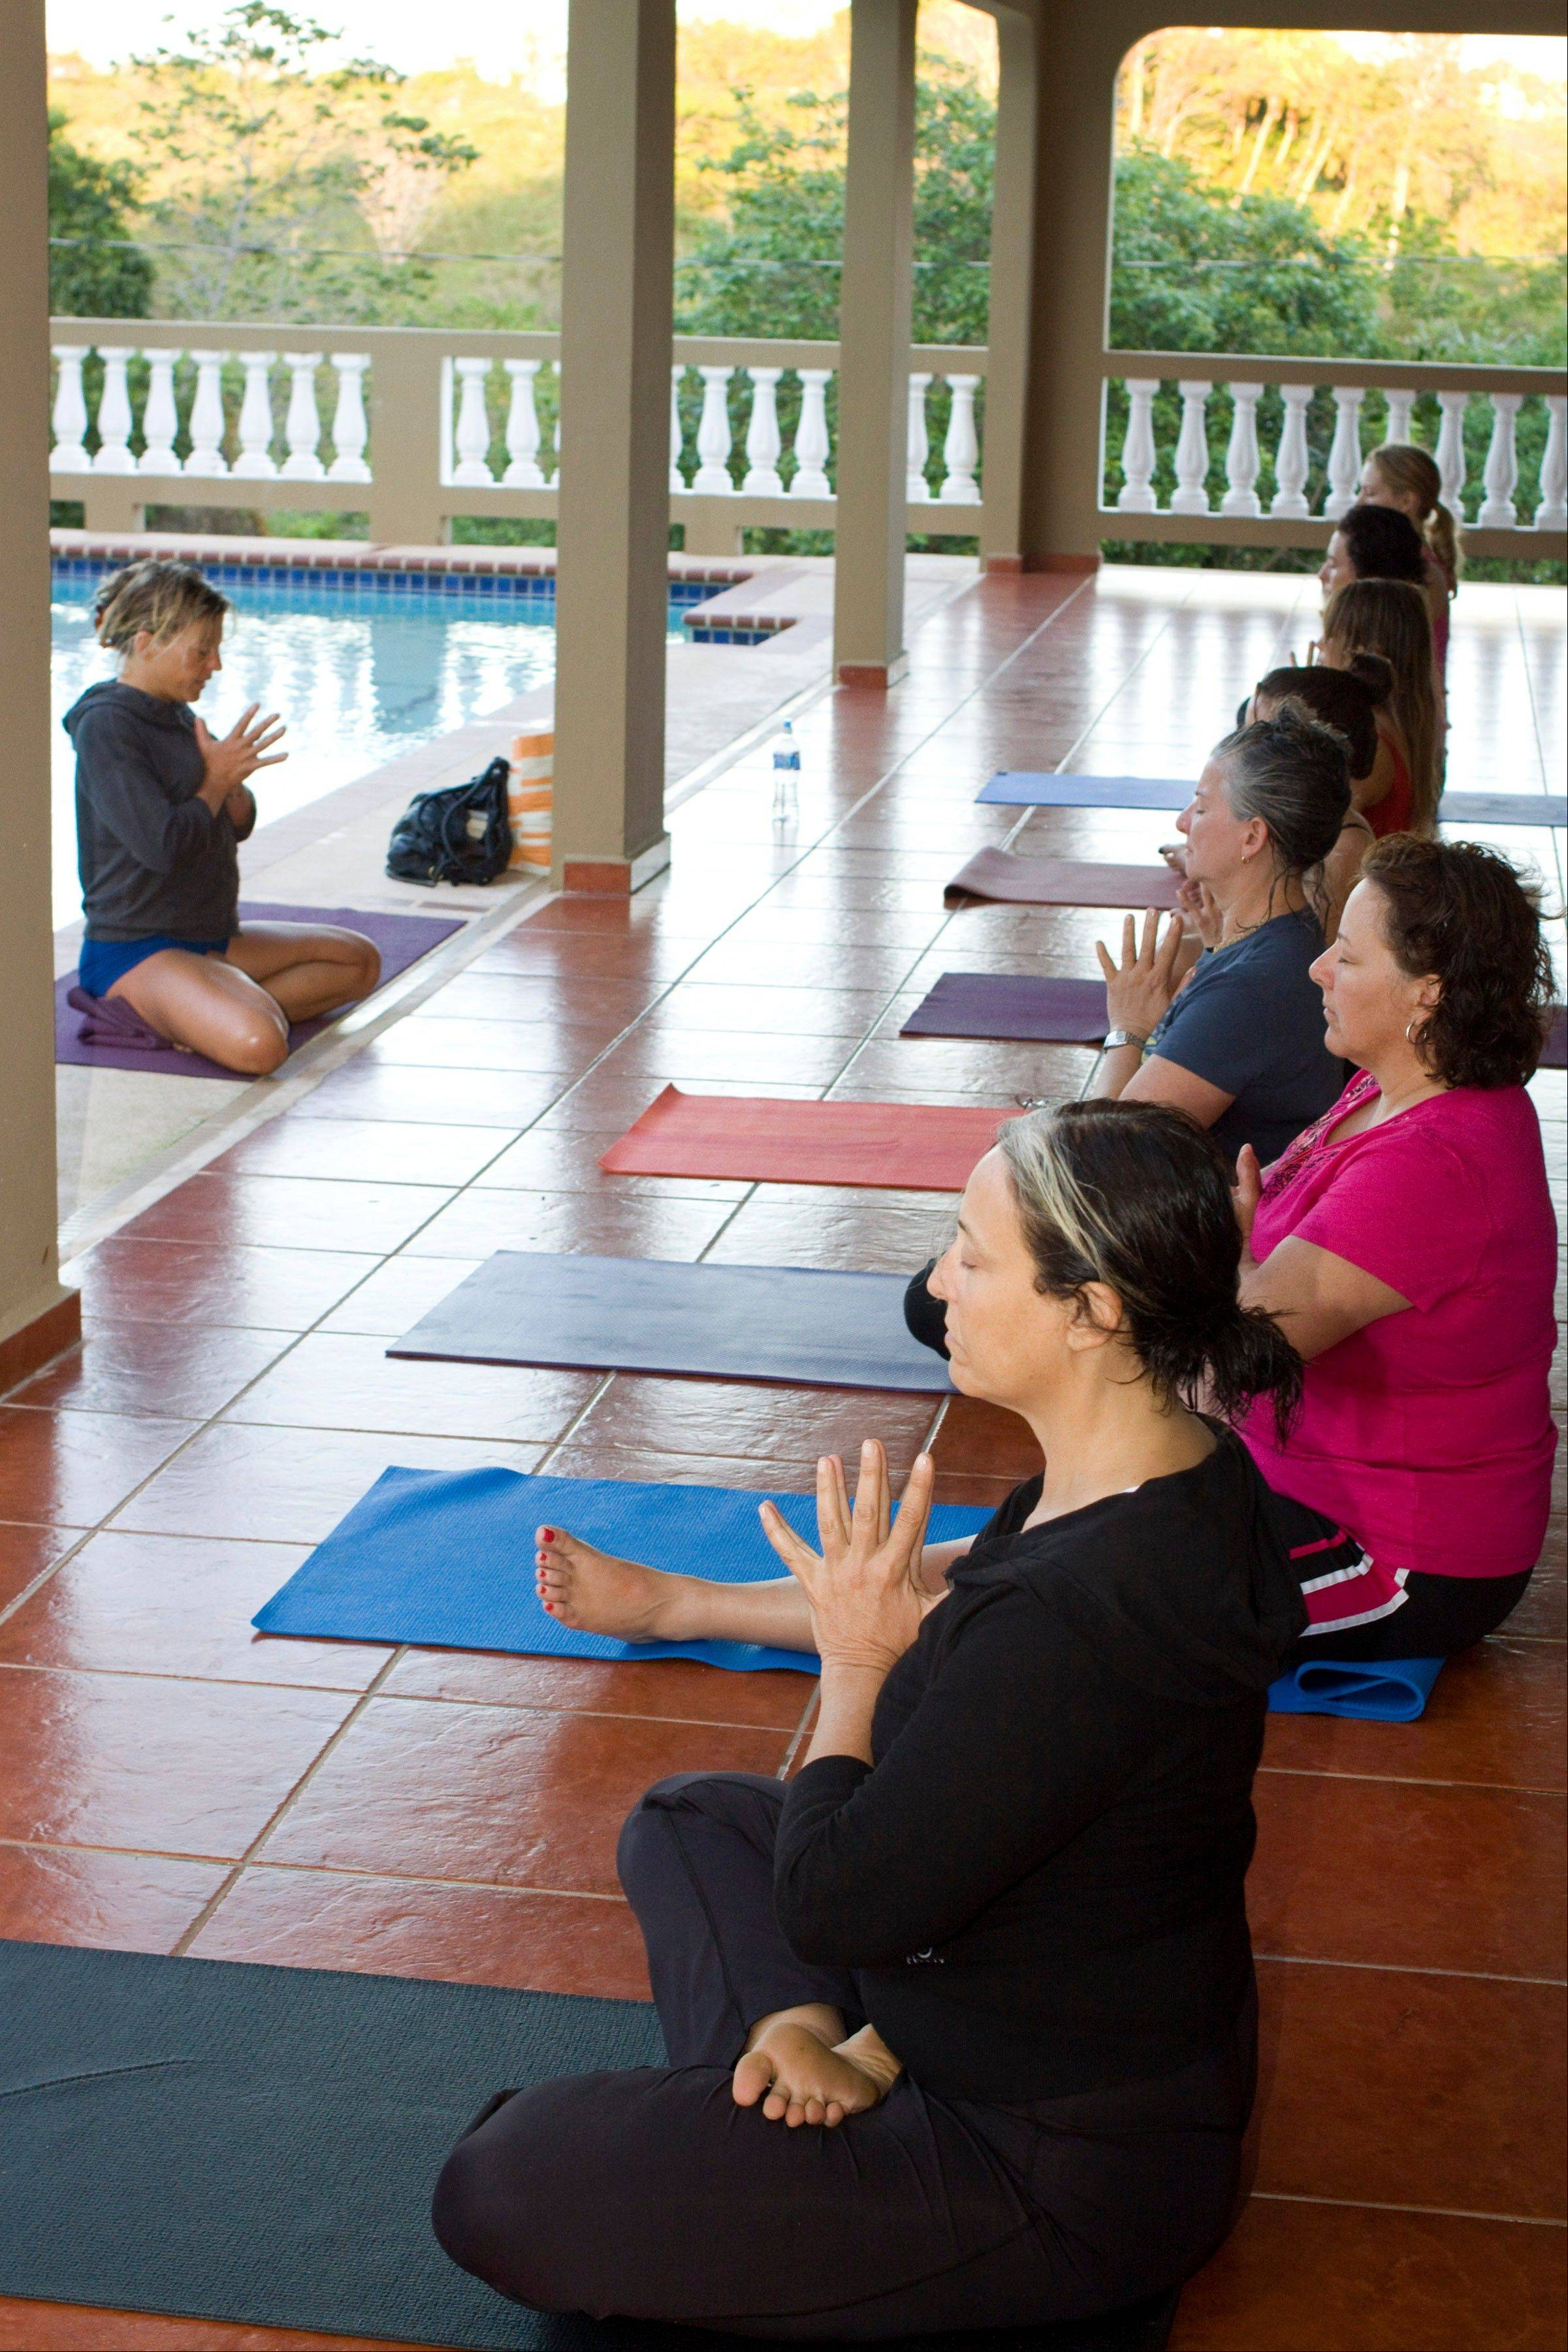 A yoga session in Rincon, Puerto Rico, at a retreat created by Jessica Bellofatto of KamaDeva Yoga and Gina Bradley of Paddle Diva. The program is an example of active vacations tailored to travelers who value healthy lifestyles and new experiences.